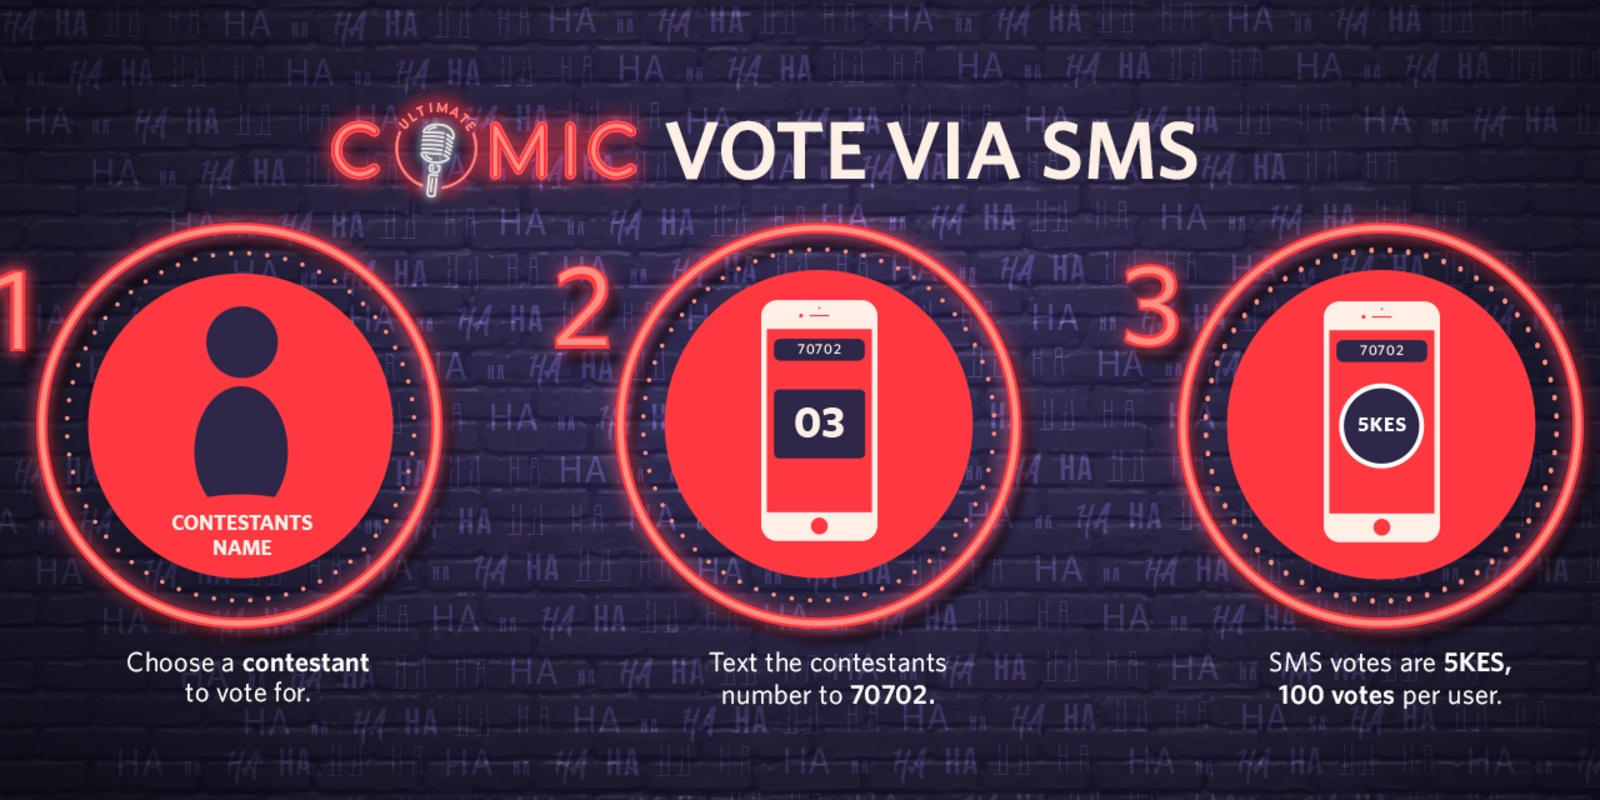 1519819087 34 ultimate comic   how to vote sms